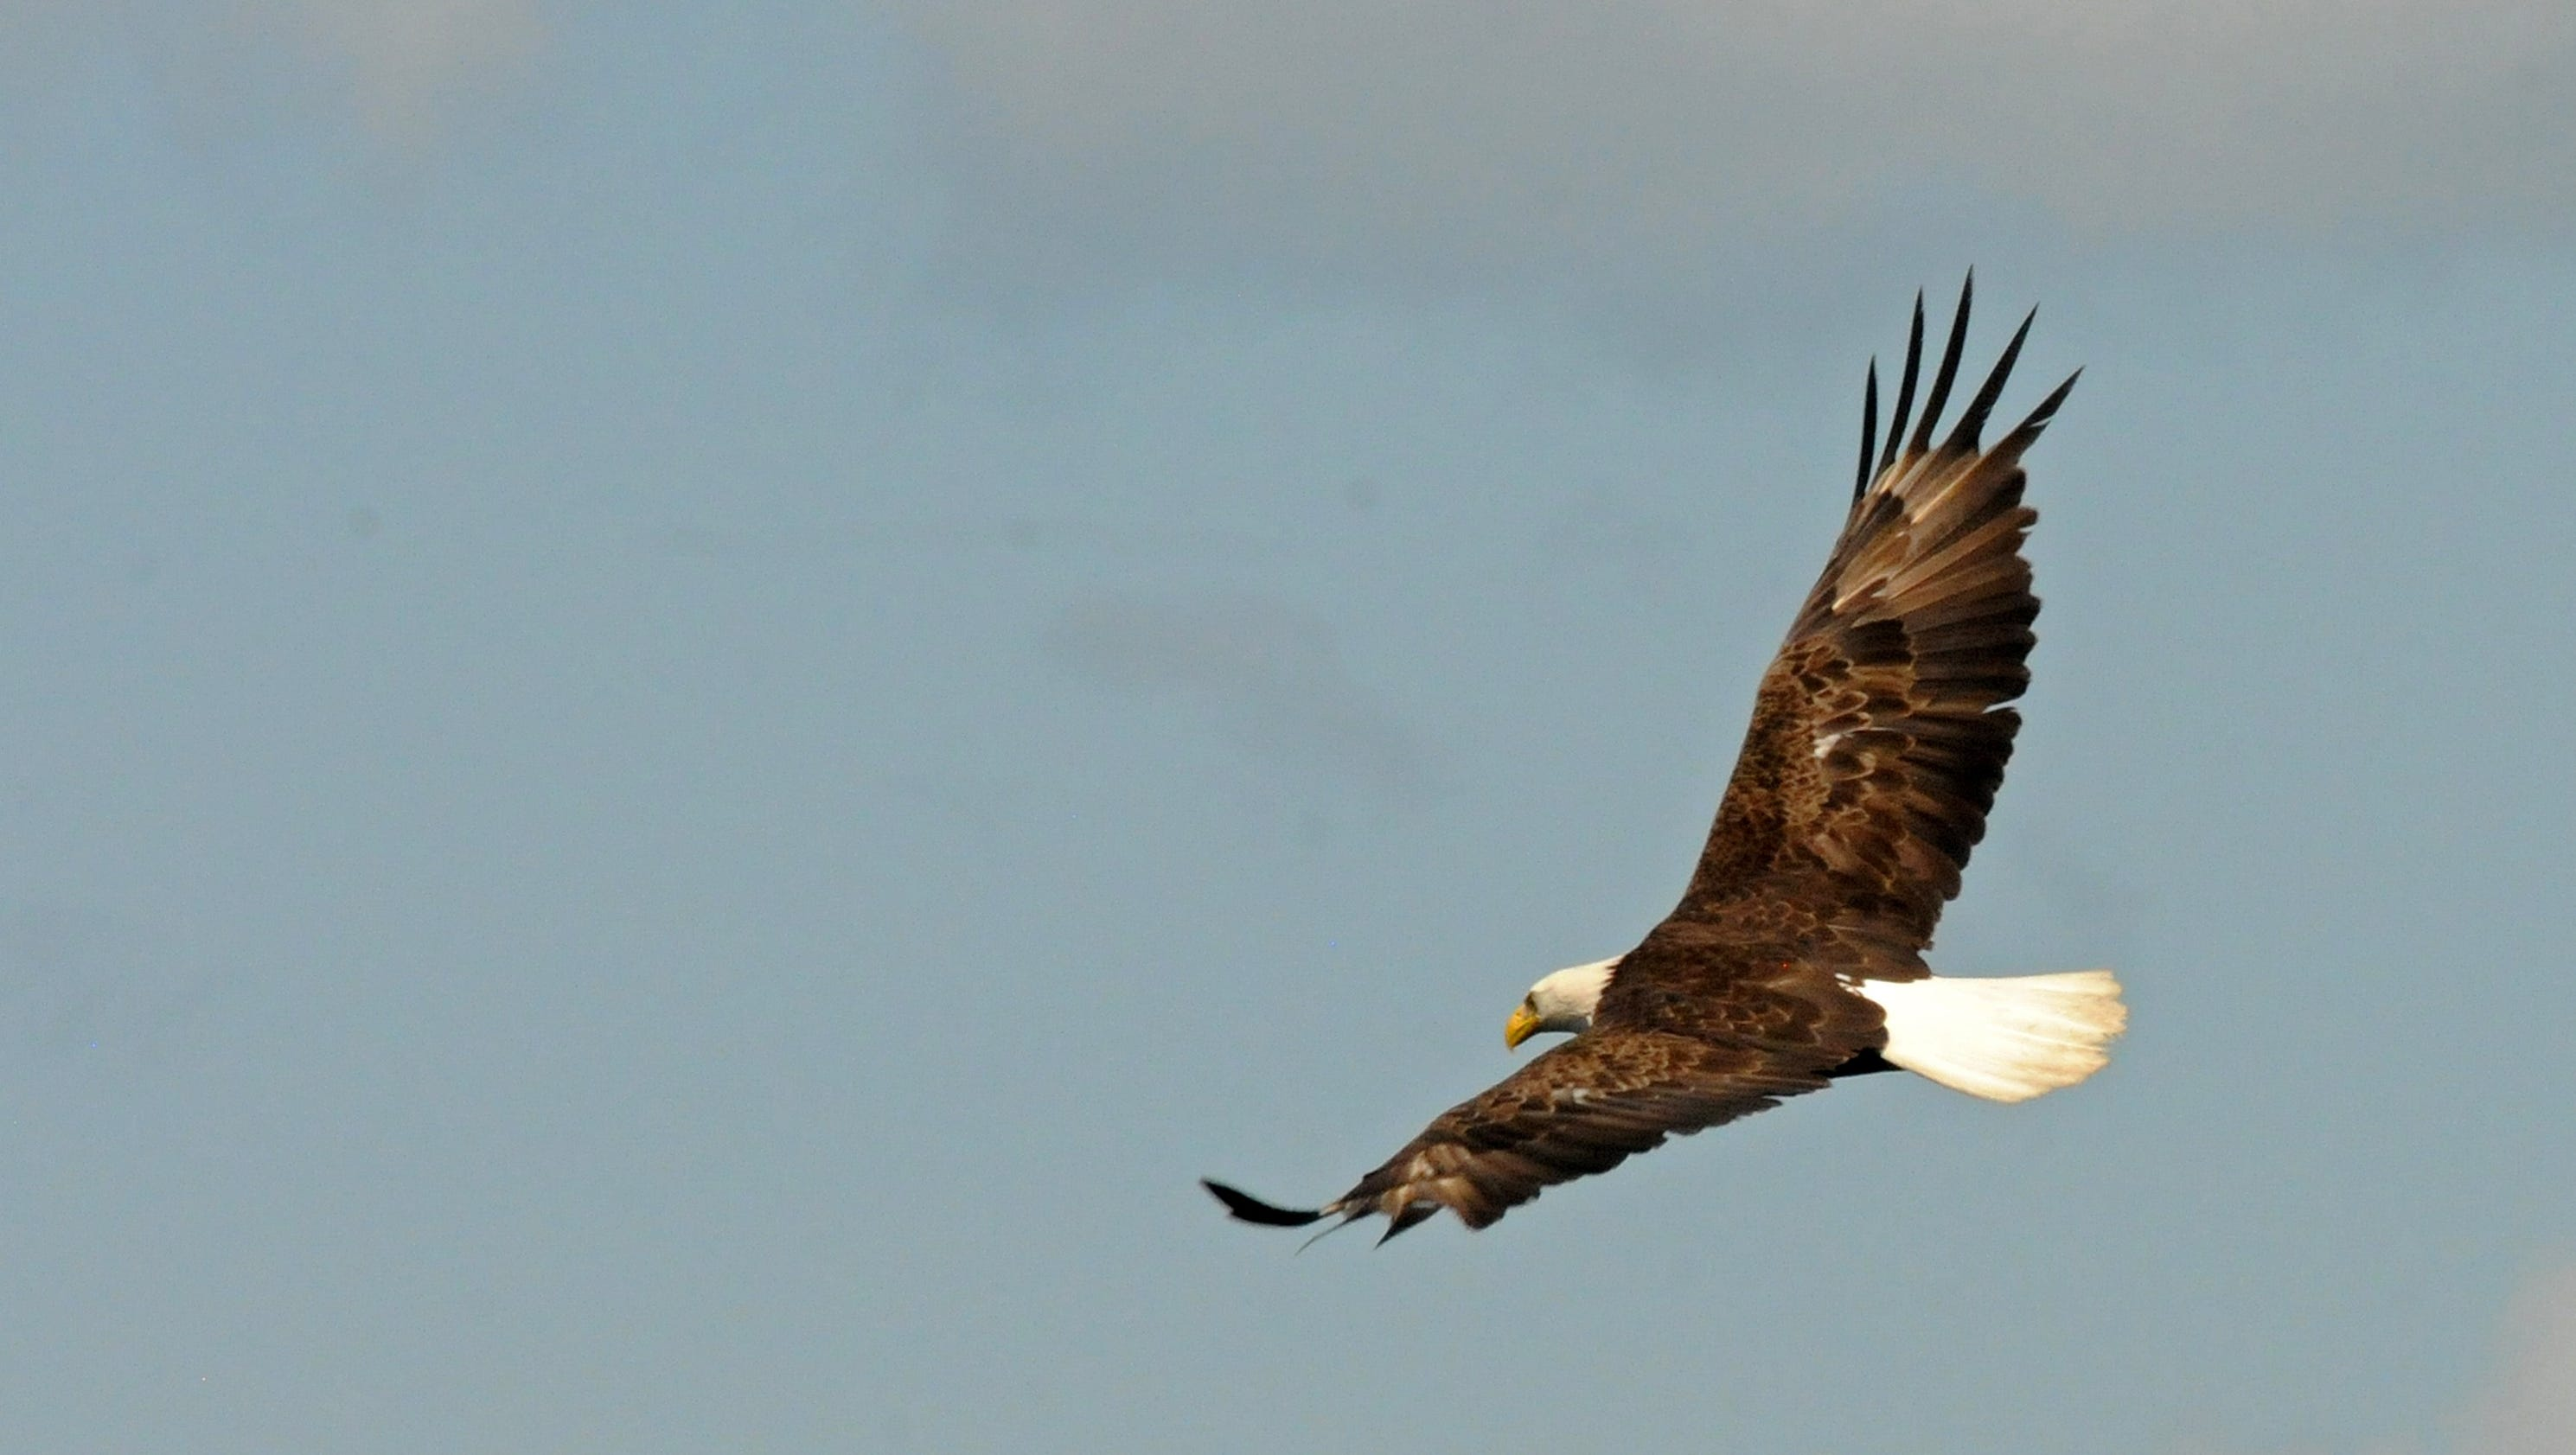 Bald eagle numbers remain strong but lead poisoning remains problem rubansaba